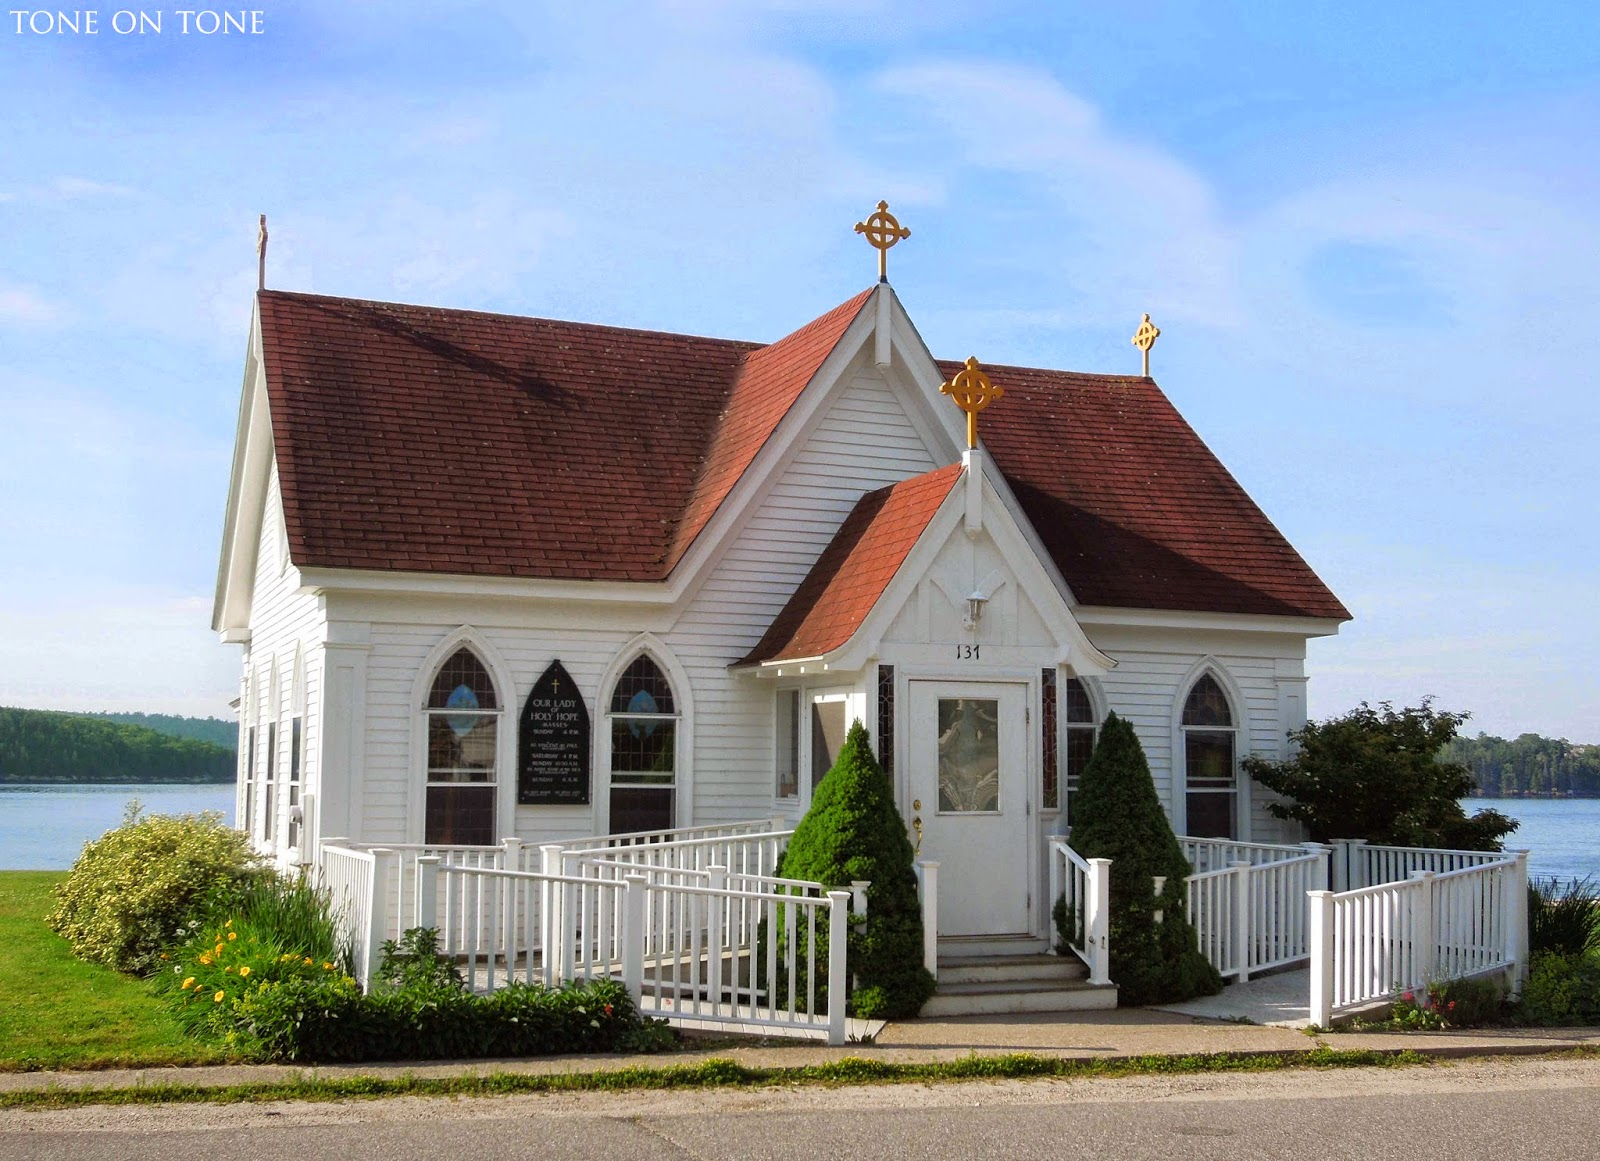 Tone on tone welcome to castine maine - Homes in old churches ...